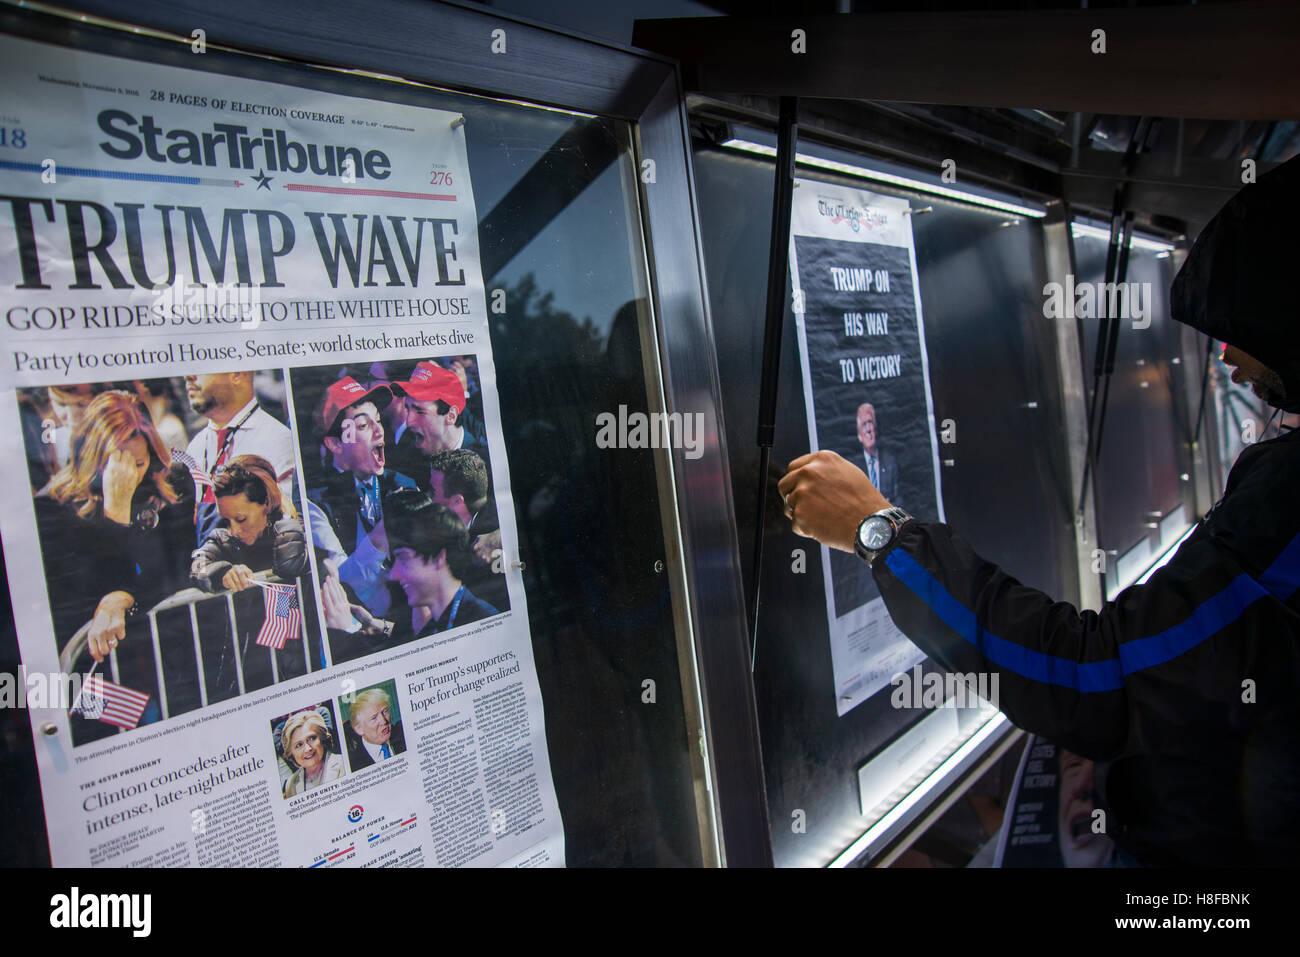 Nov9, 2016 Newspapers with Headlines being put up early morning after election night. Donald Trump wins the election - Stock Image